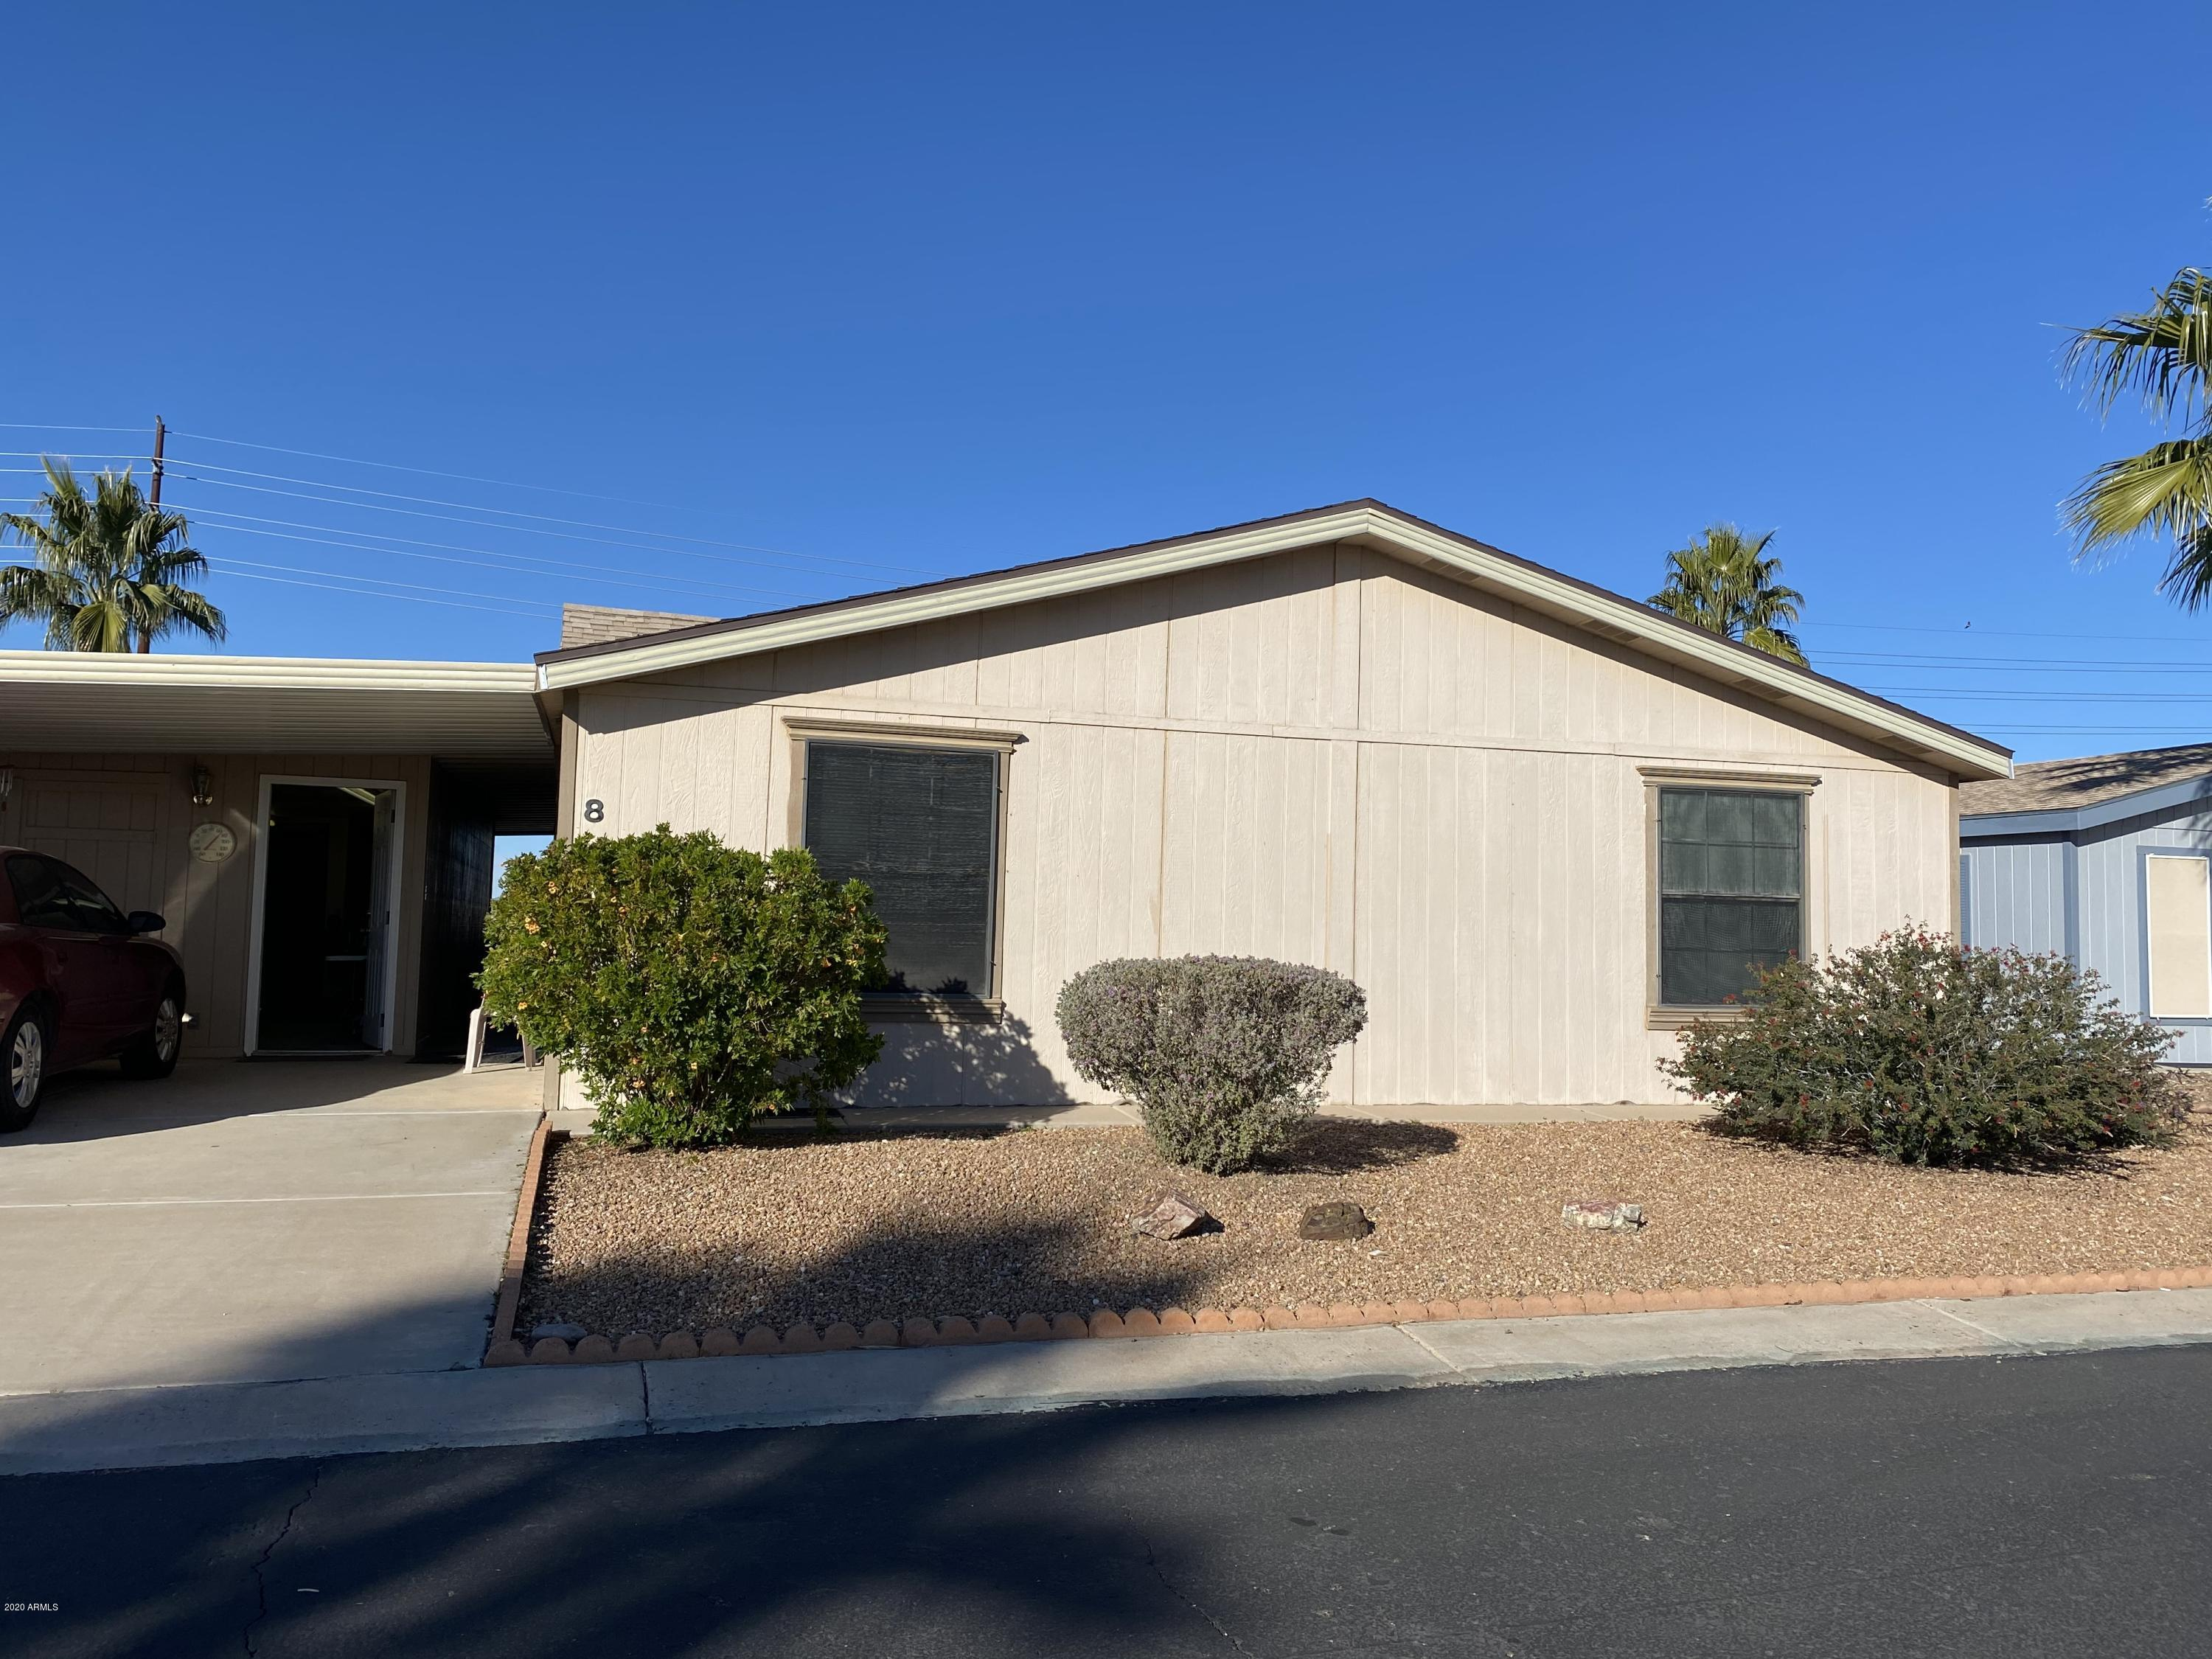 Photo of 437 E Germann Road #8, San Tan Valley, AZ 85140